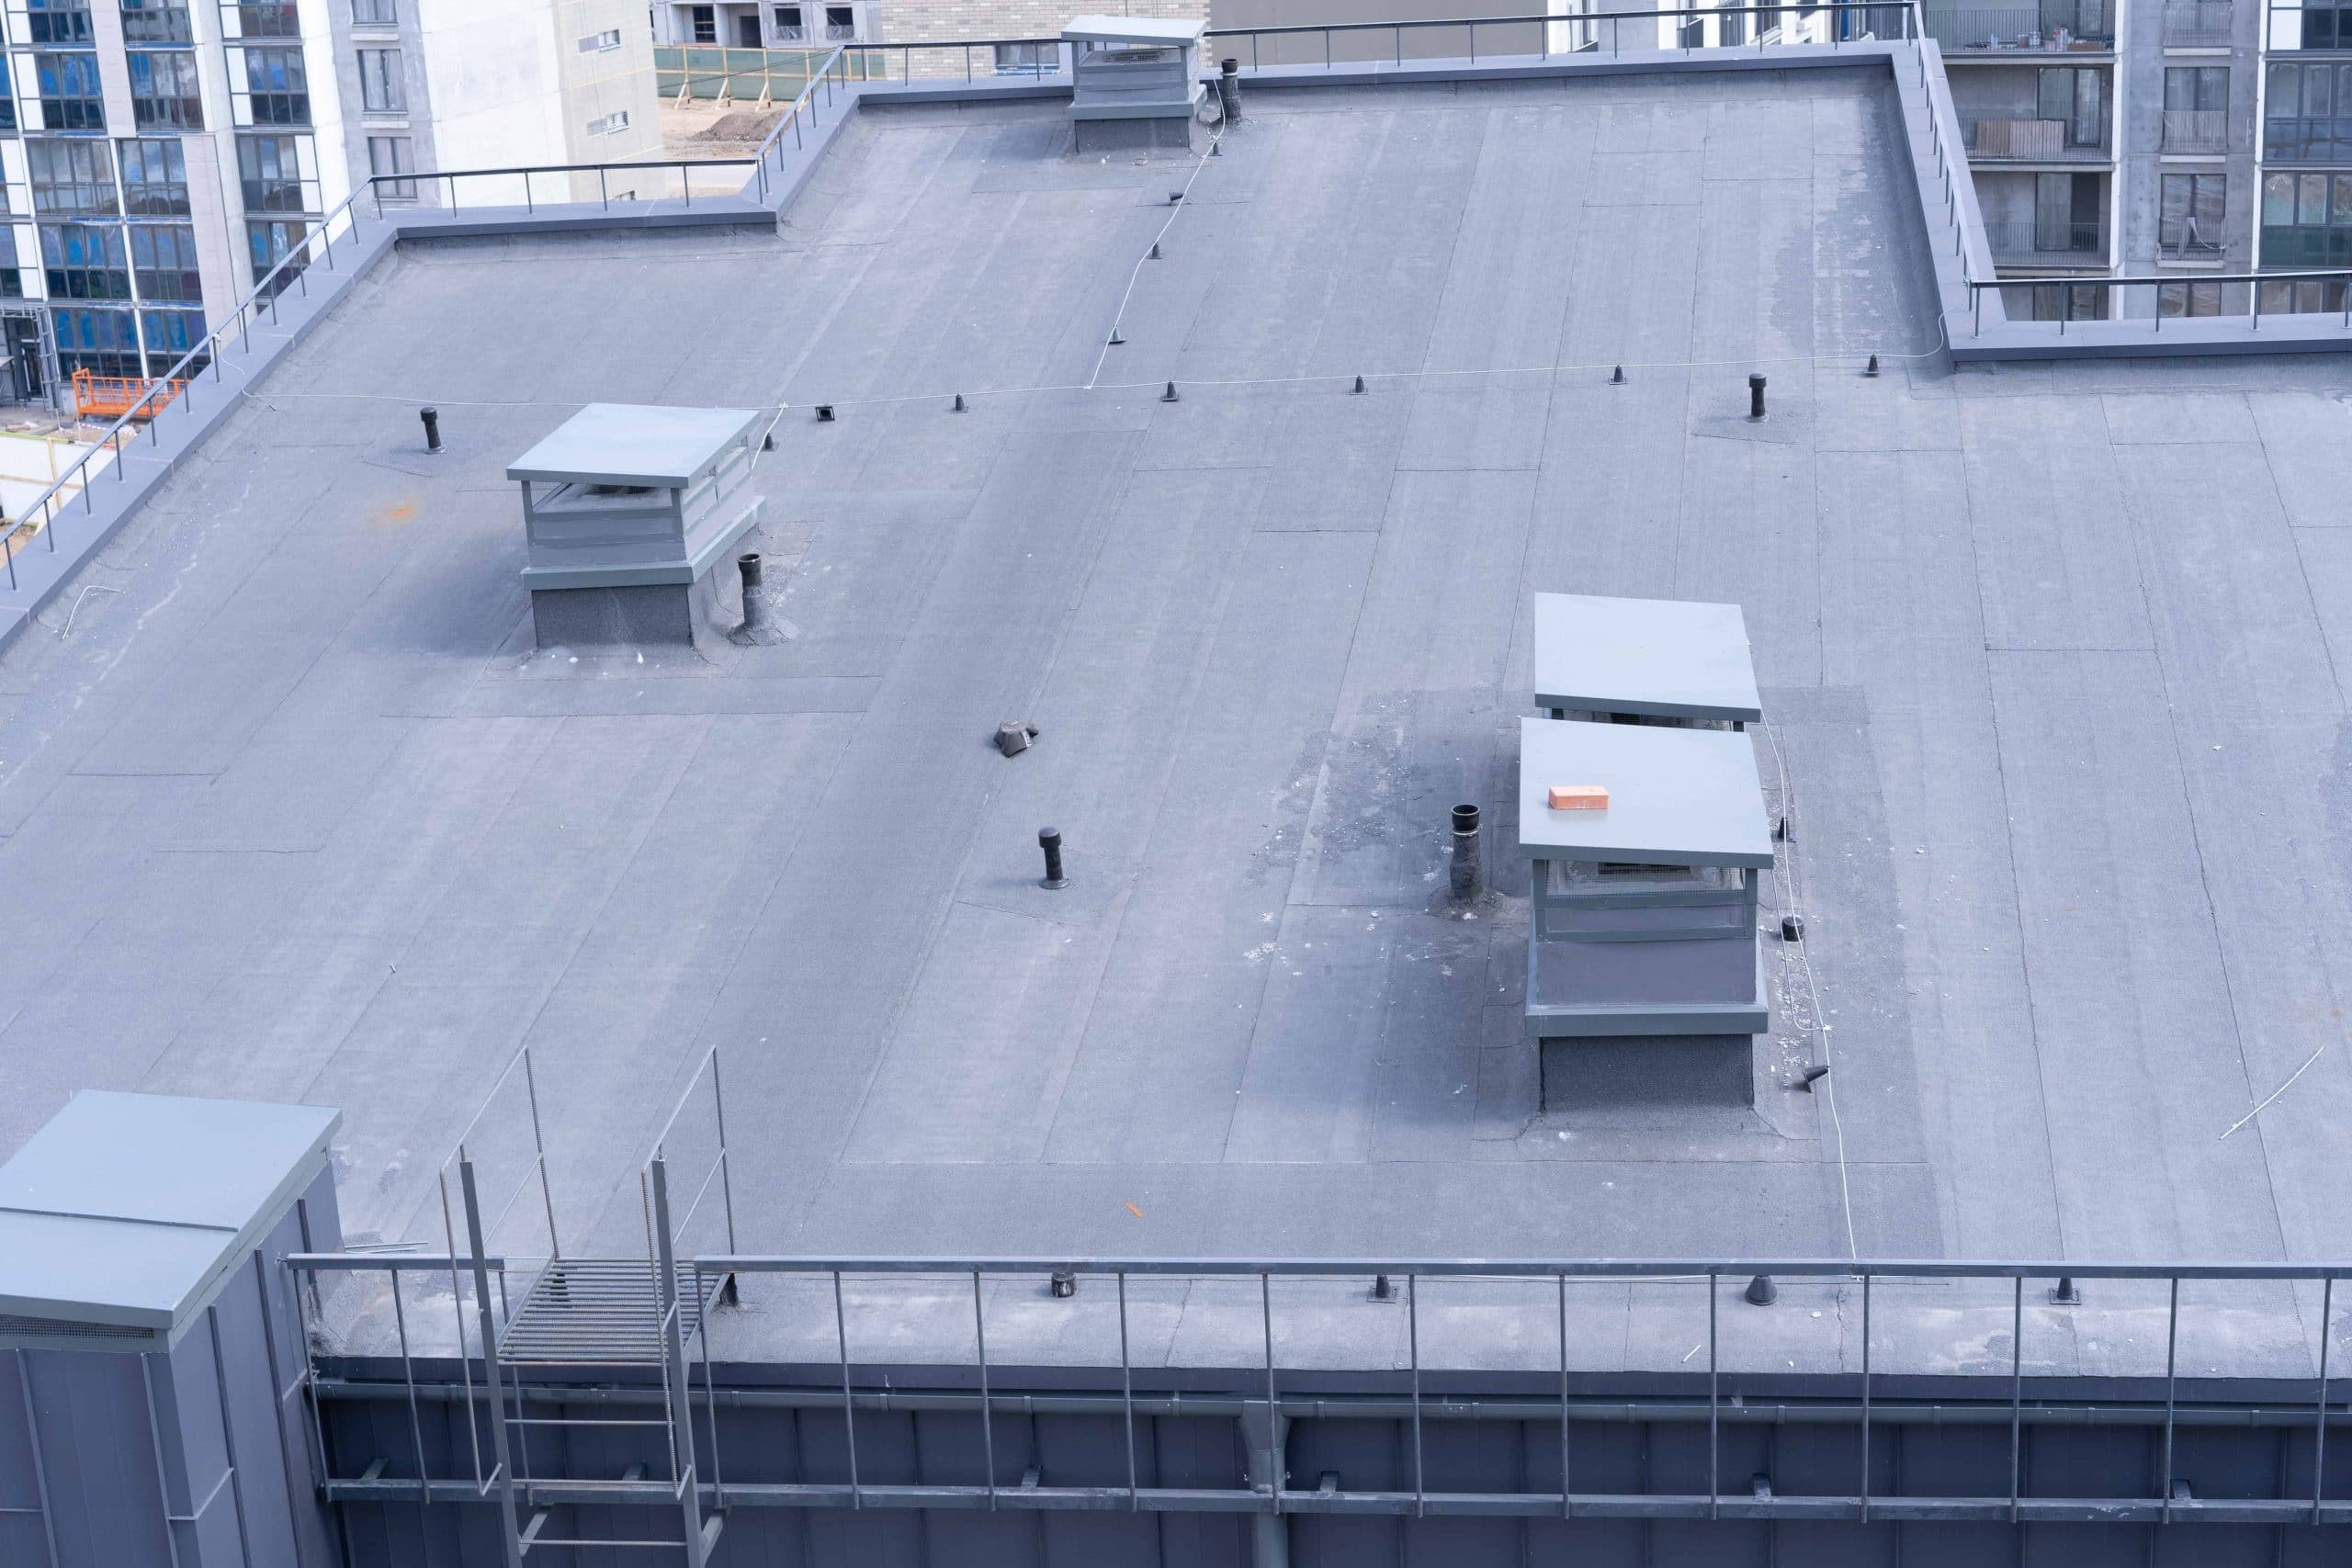 4-Myths-About-Flat-Roofs-You-Should-Know